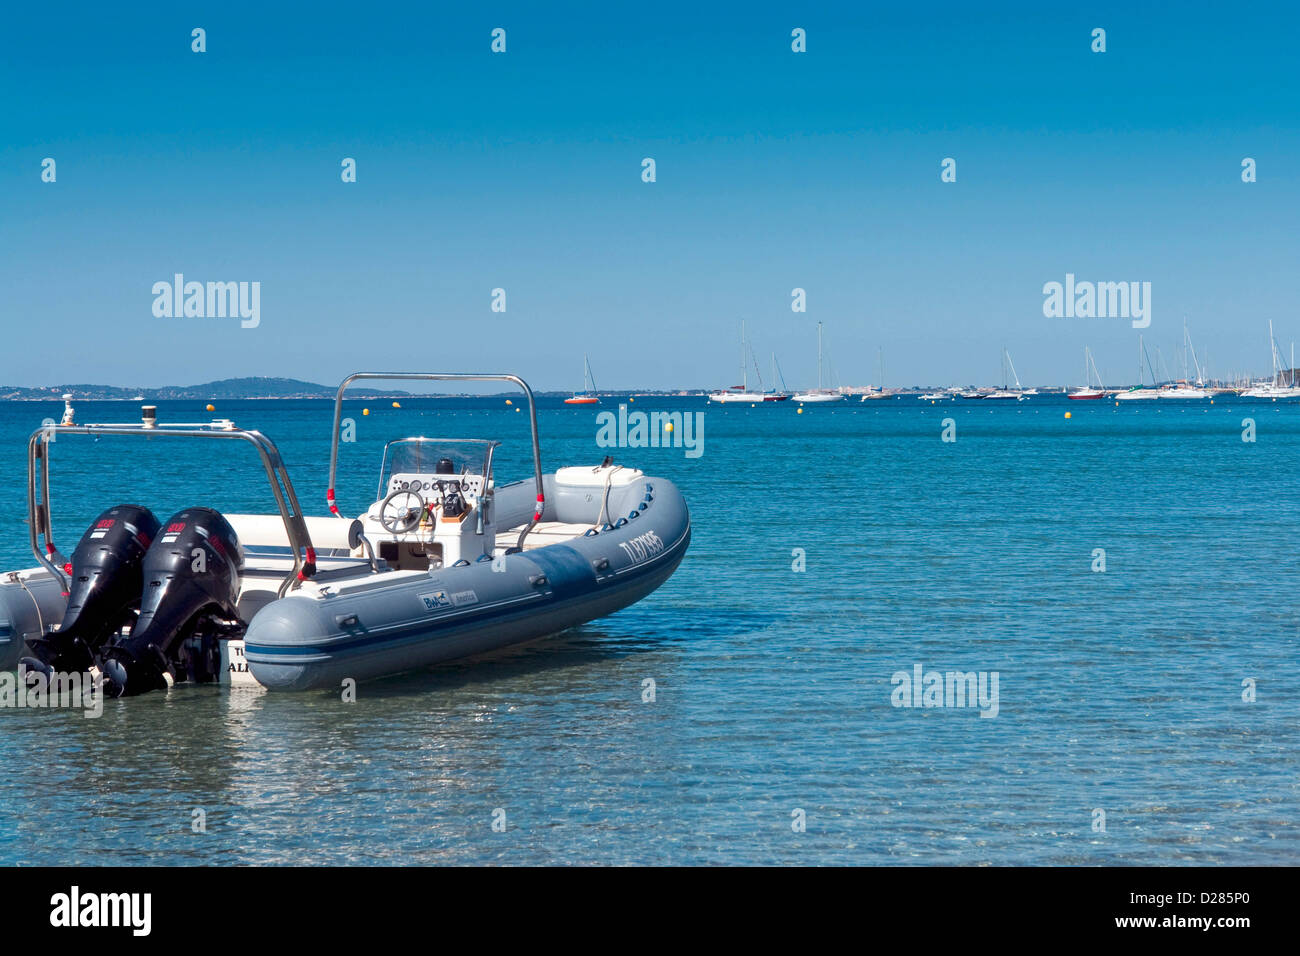 Inflatable boat with twin outboard motors moored in the Mediterrean - Stock Image